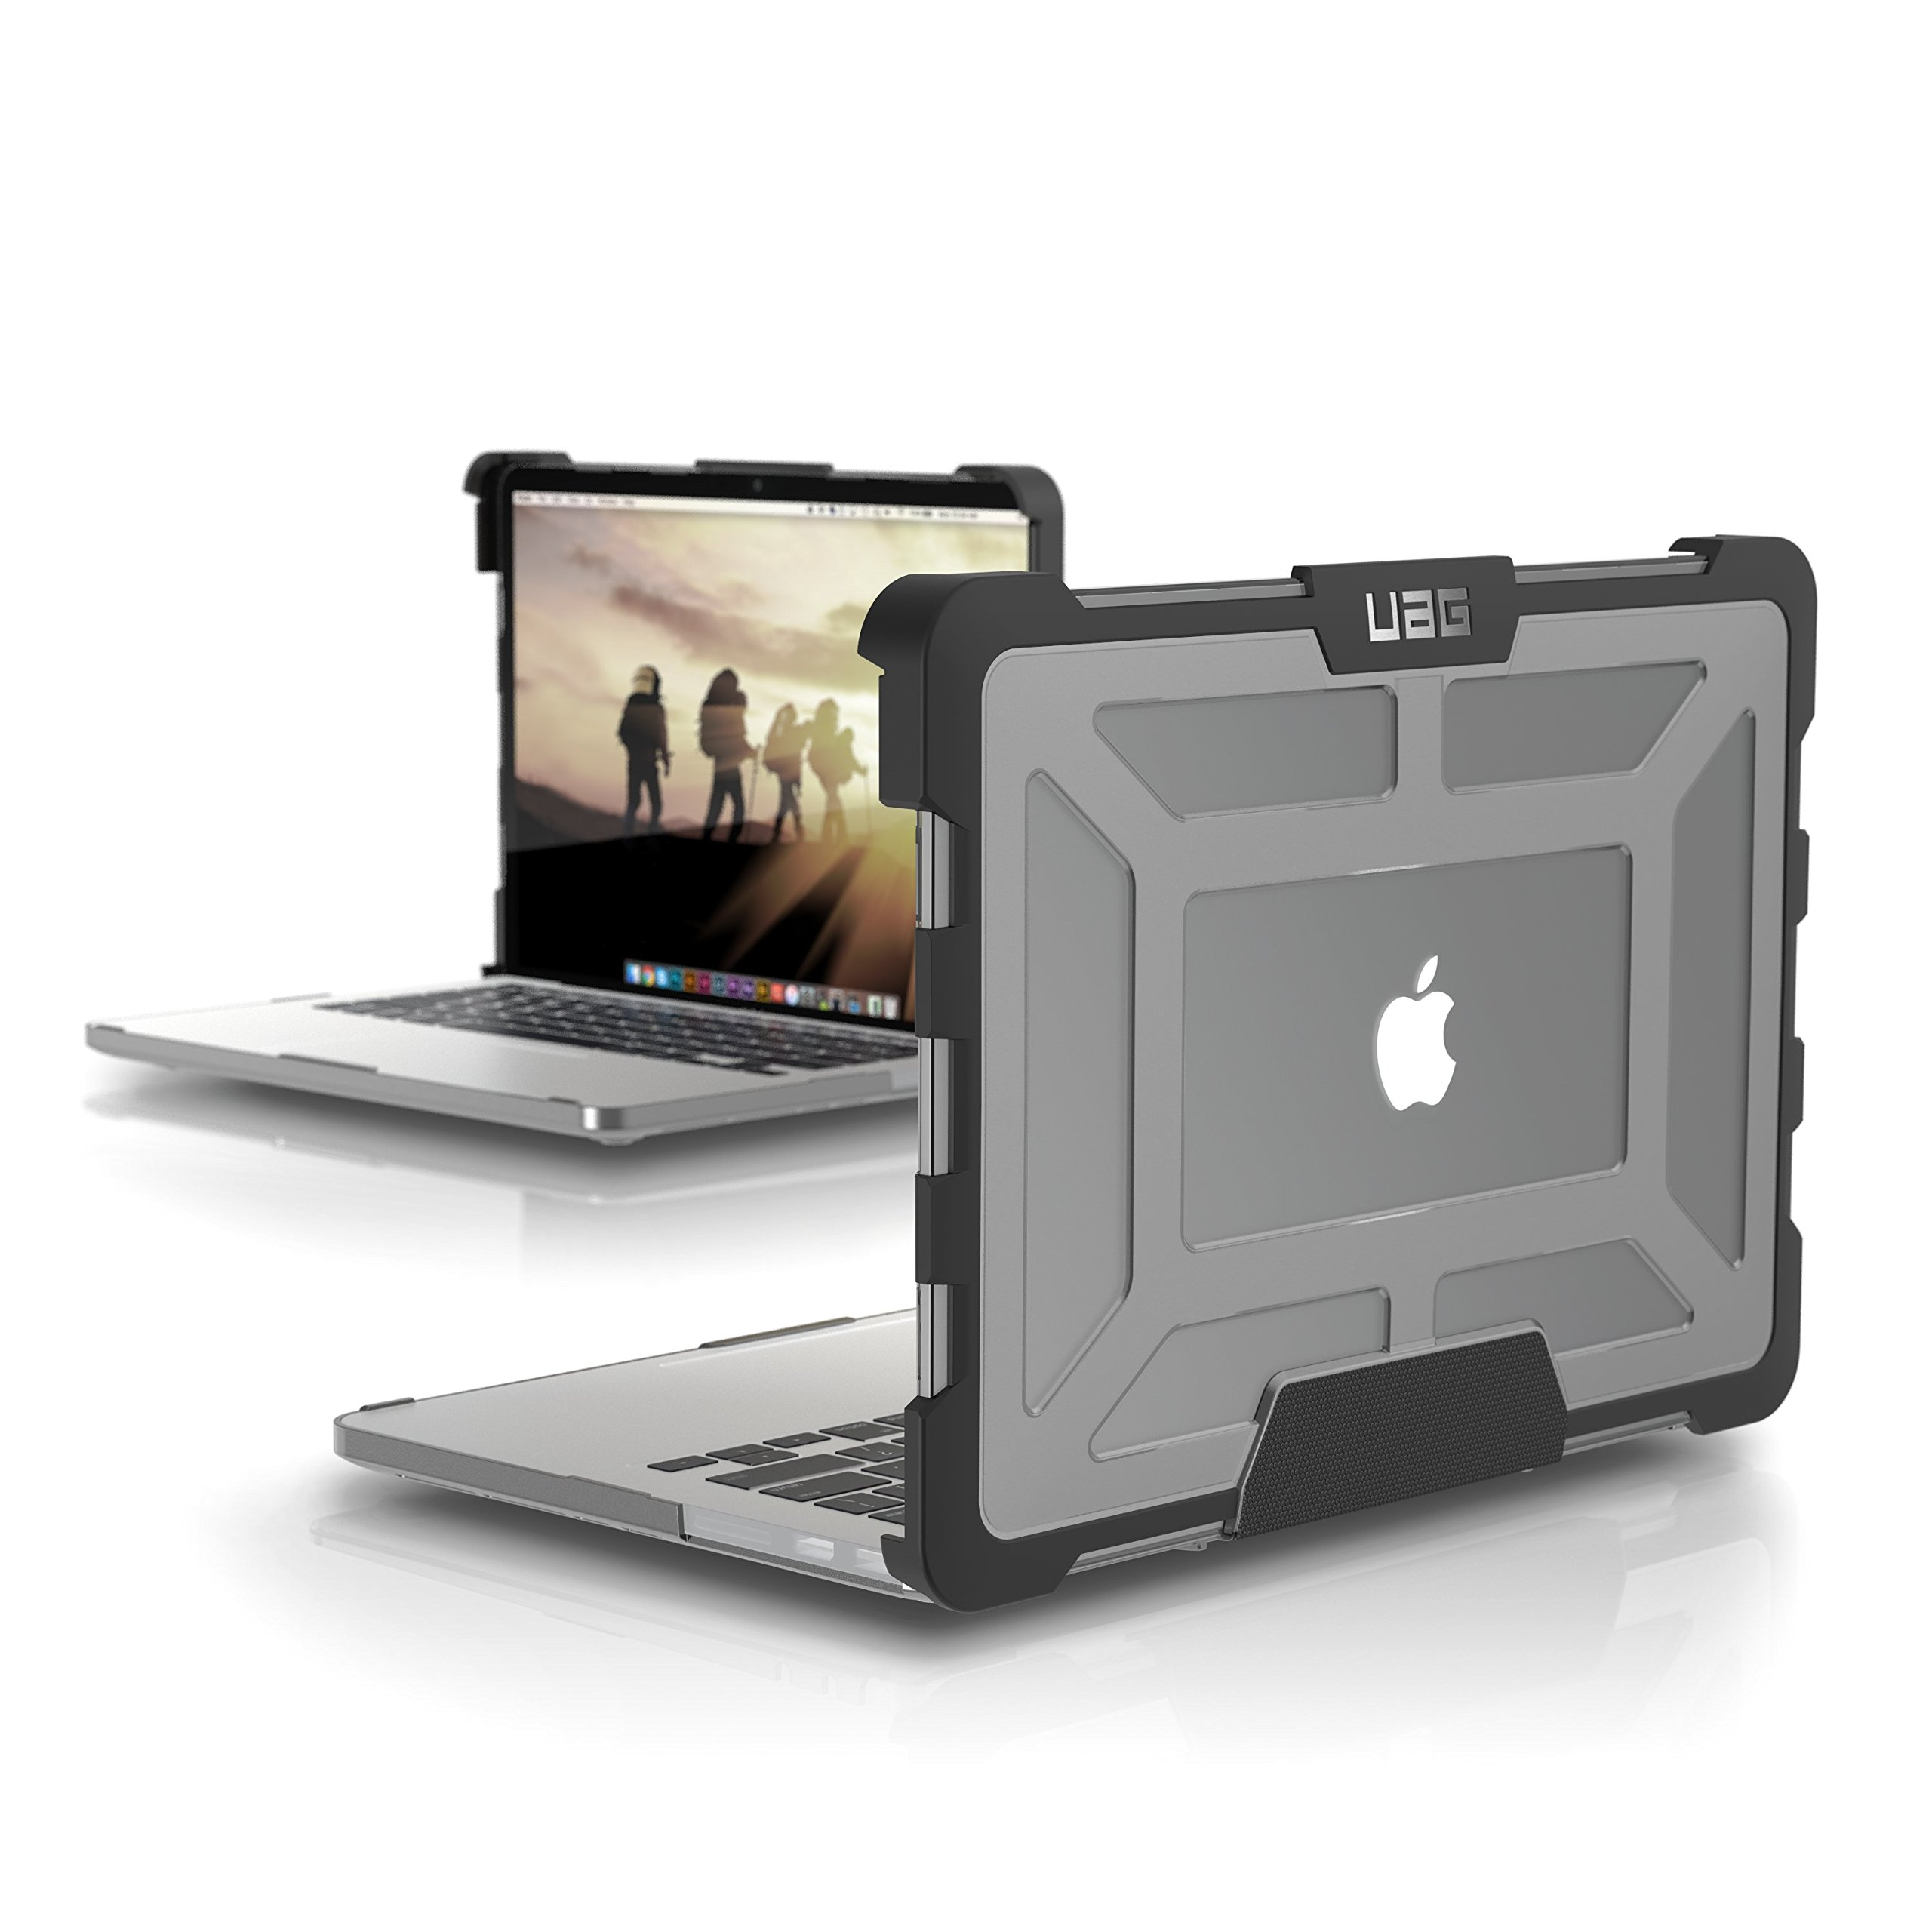 UAG MacBook Pro 13-inch with Retina Display (3rd Gen) Feather-Light Rugged [ASH] Military Drop Tested Laptop Case by URBAN ARMOR GEAR (Image #1)